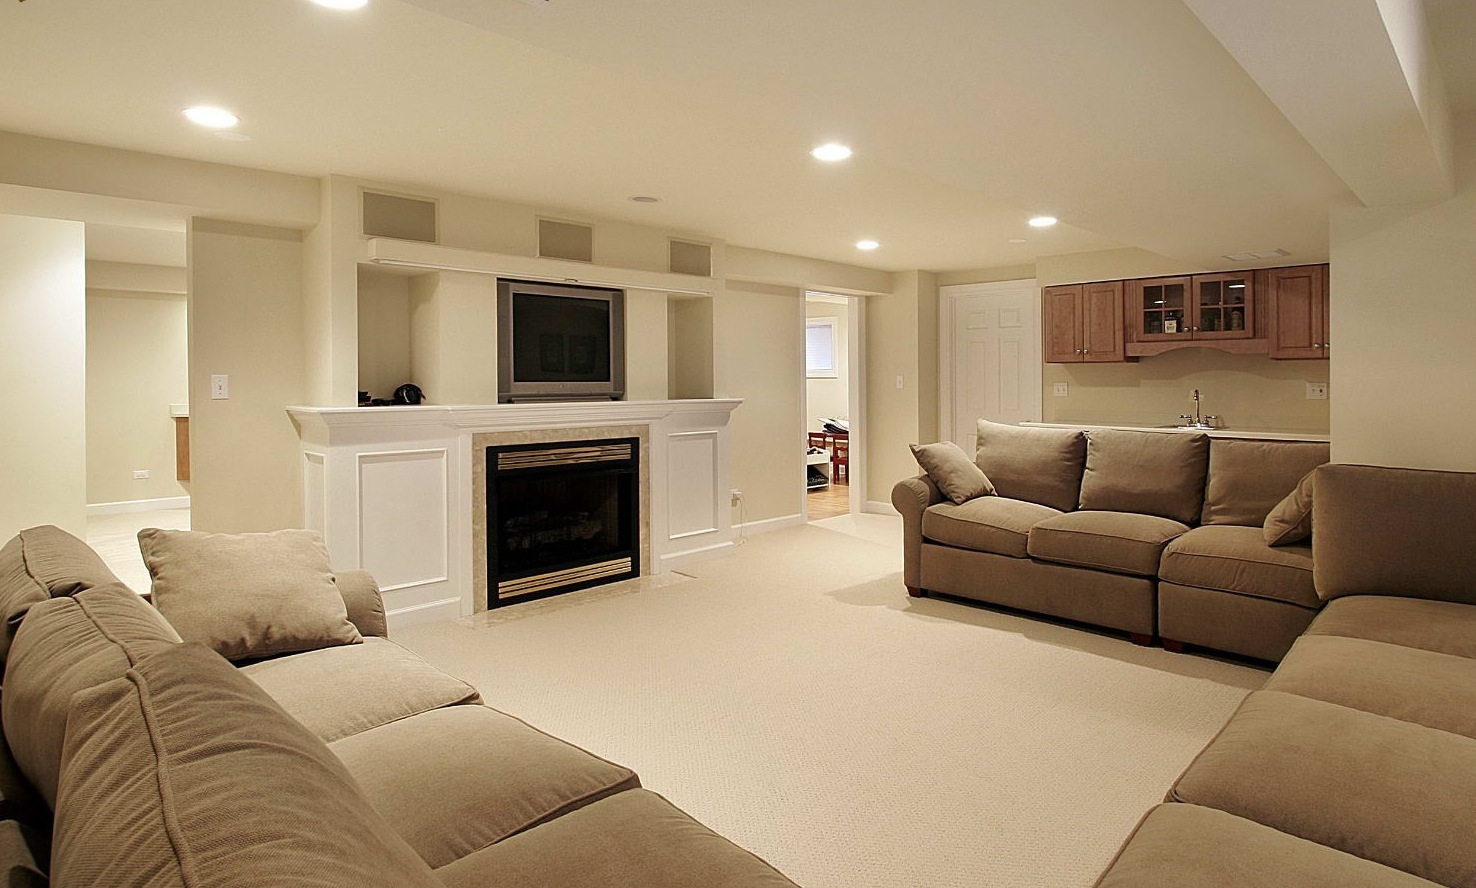 30 basement remodeling ideas inspiration - Finish my basement ideas ...